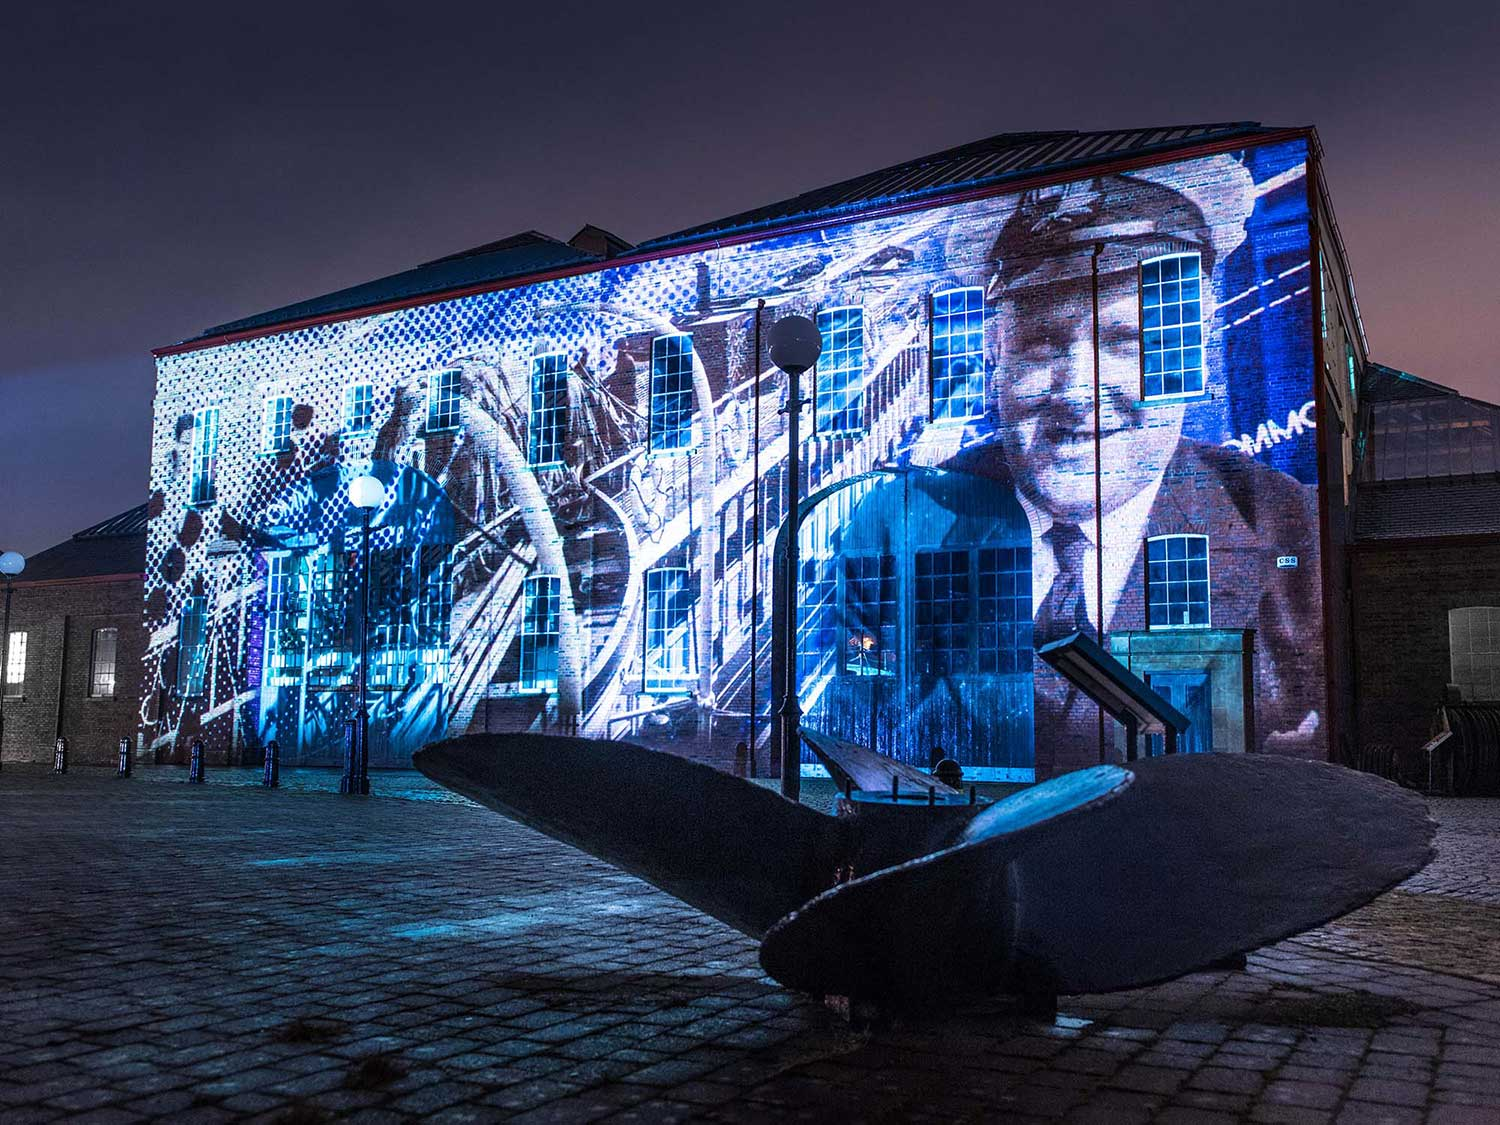 Illumination, Irvine Maritime Museum Building Projections show, archive footage